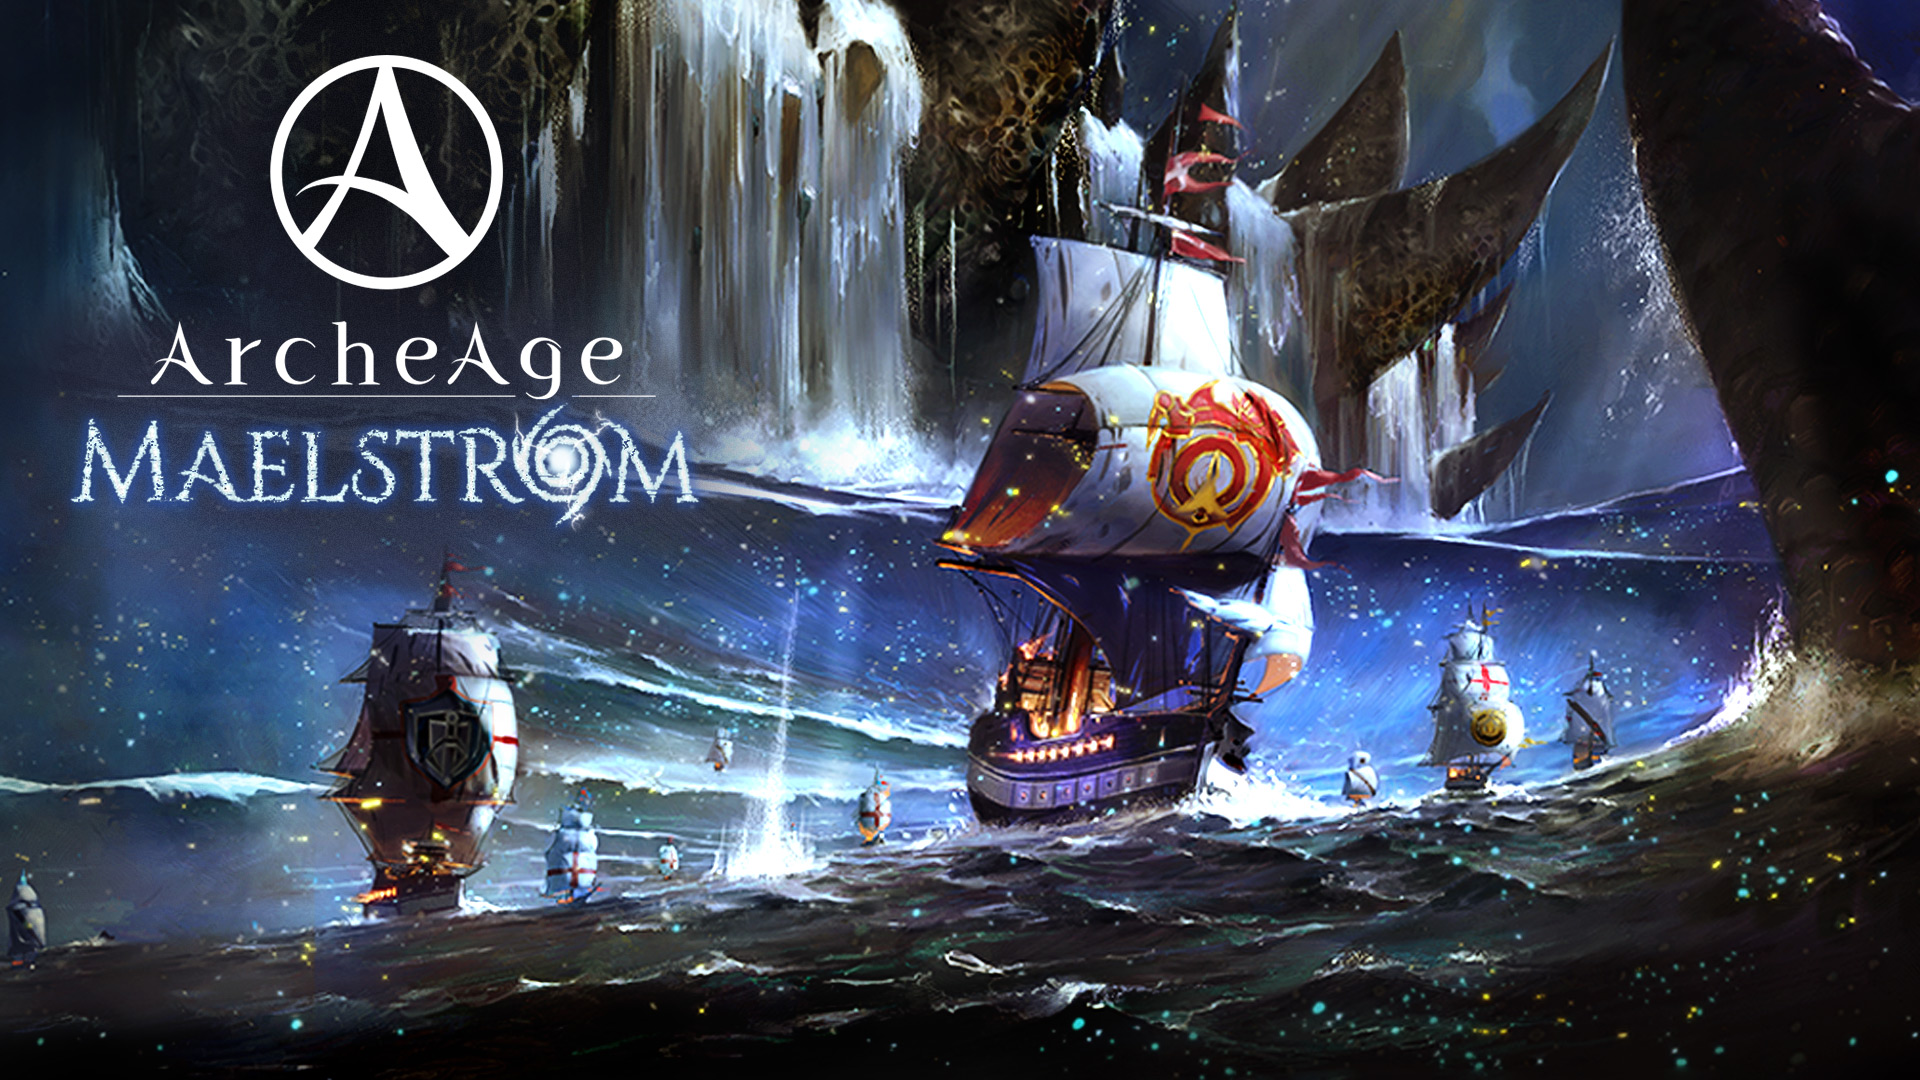 Trion kündigt neues Update in ArcheAge an: Mahlstrom